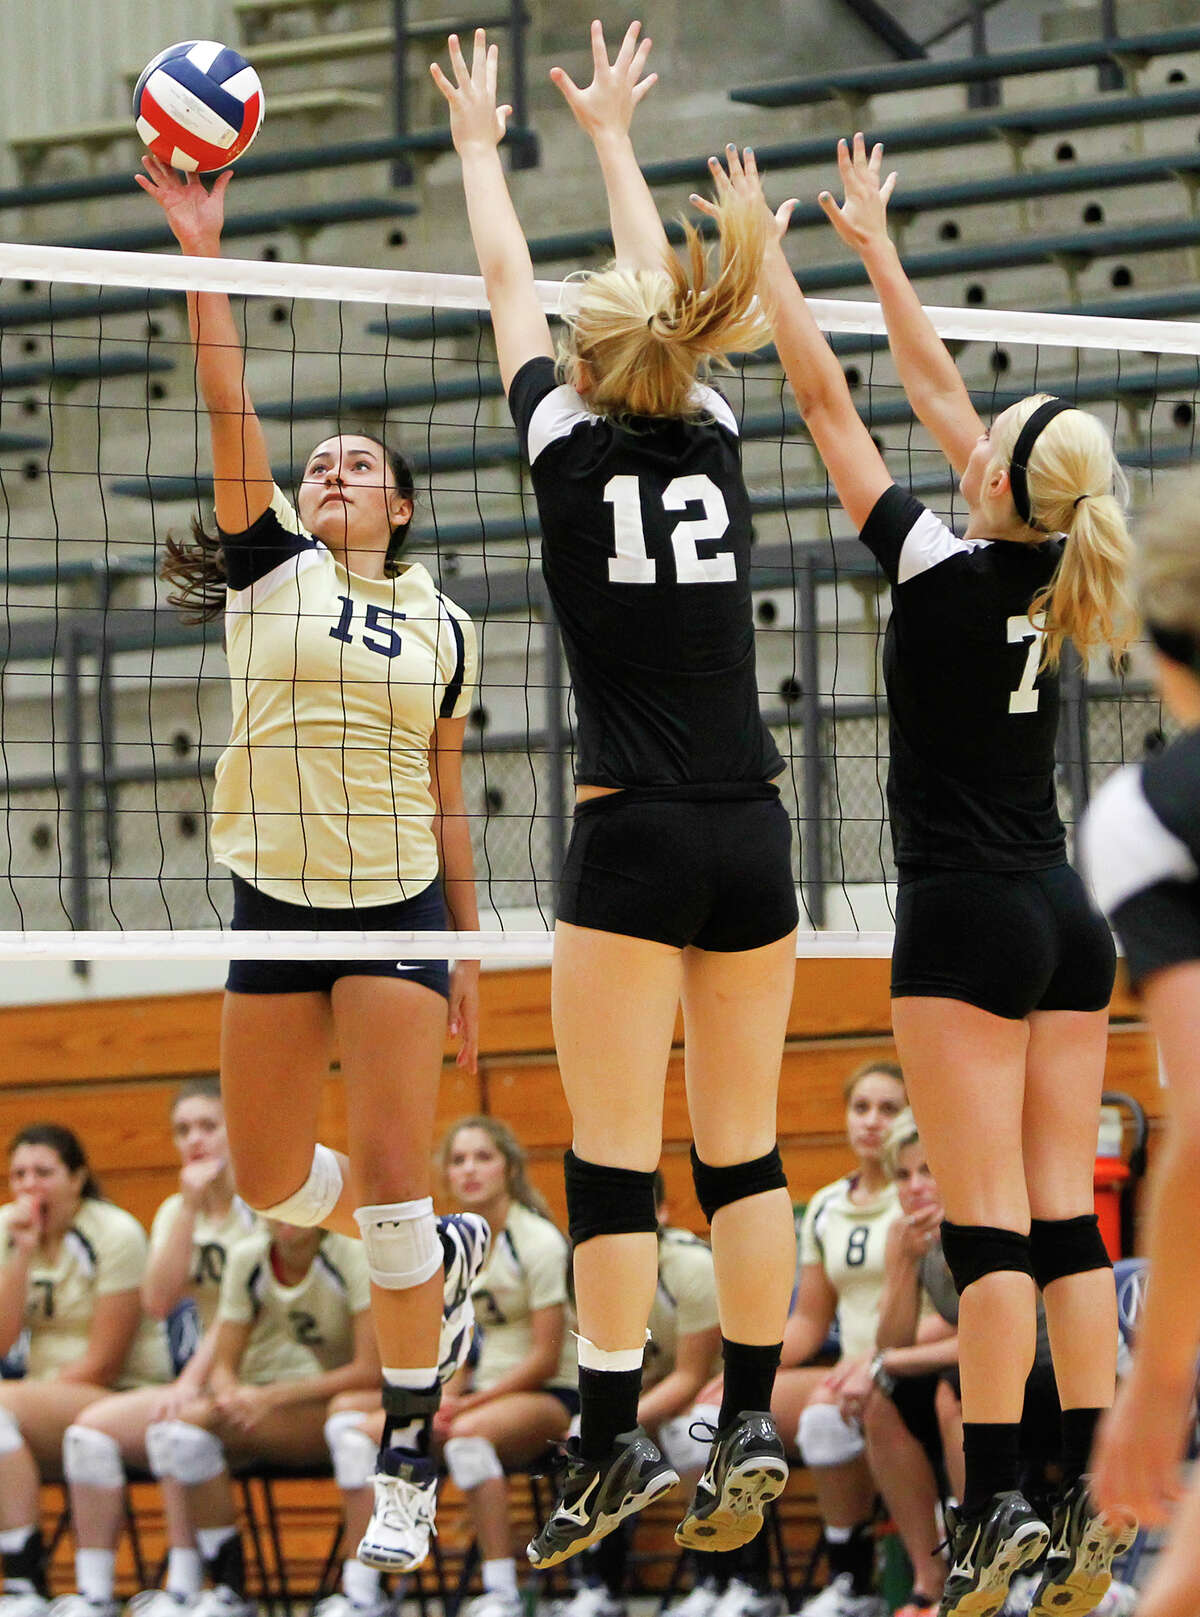 O'Connor's Brianna Sotello (left) leaps to put a shot past Clark's Kim Gillette (center) and Kristin Moczygemba during their District 27-5A volleyball match at Paul Taylor Field House on Tuesday, Aug. 27, 2013. O